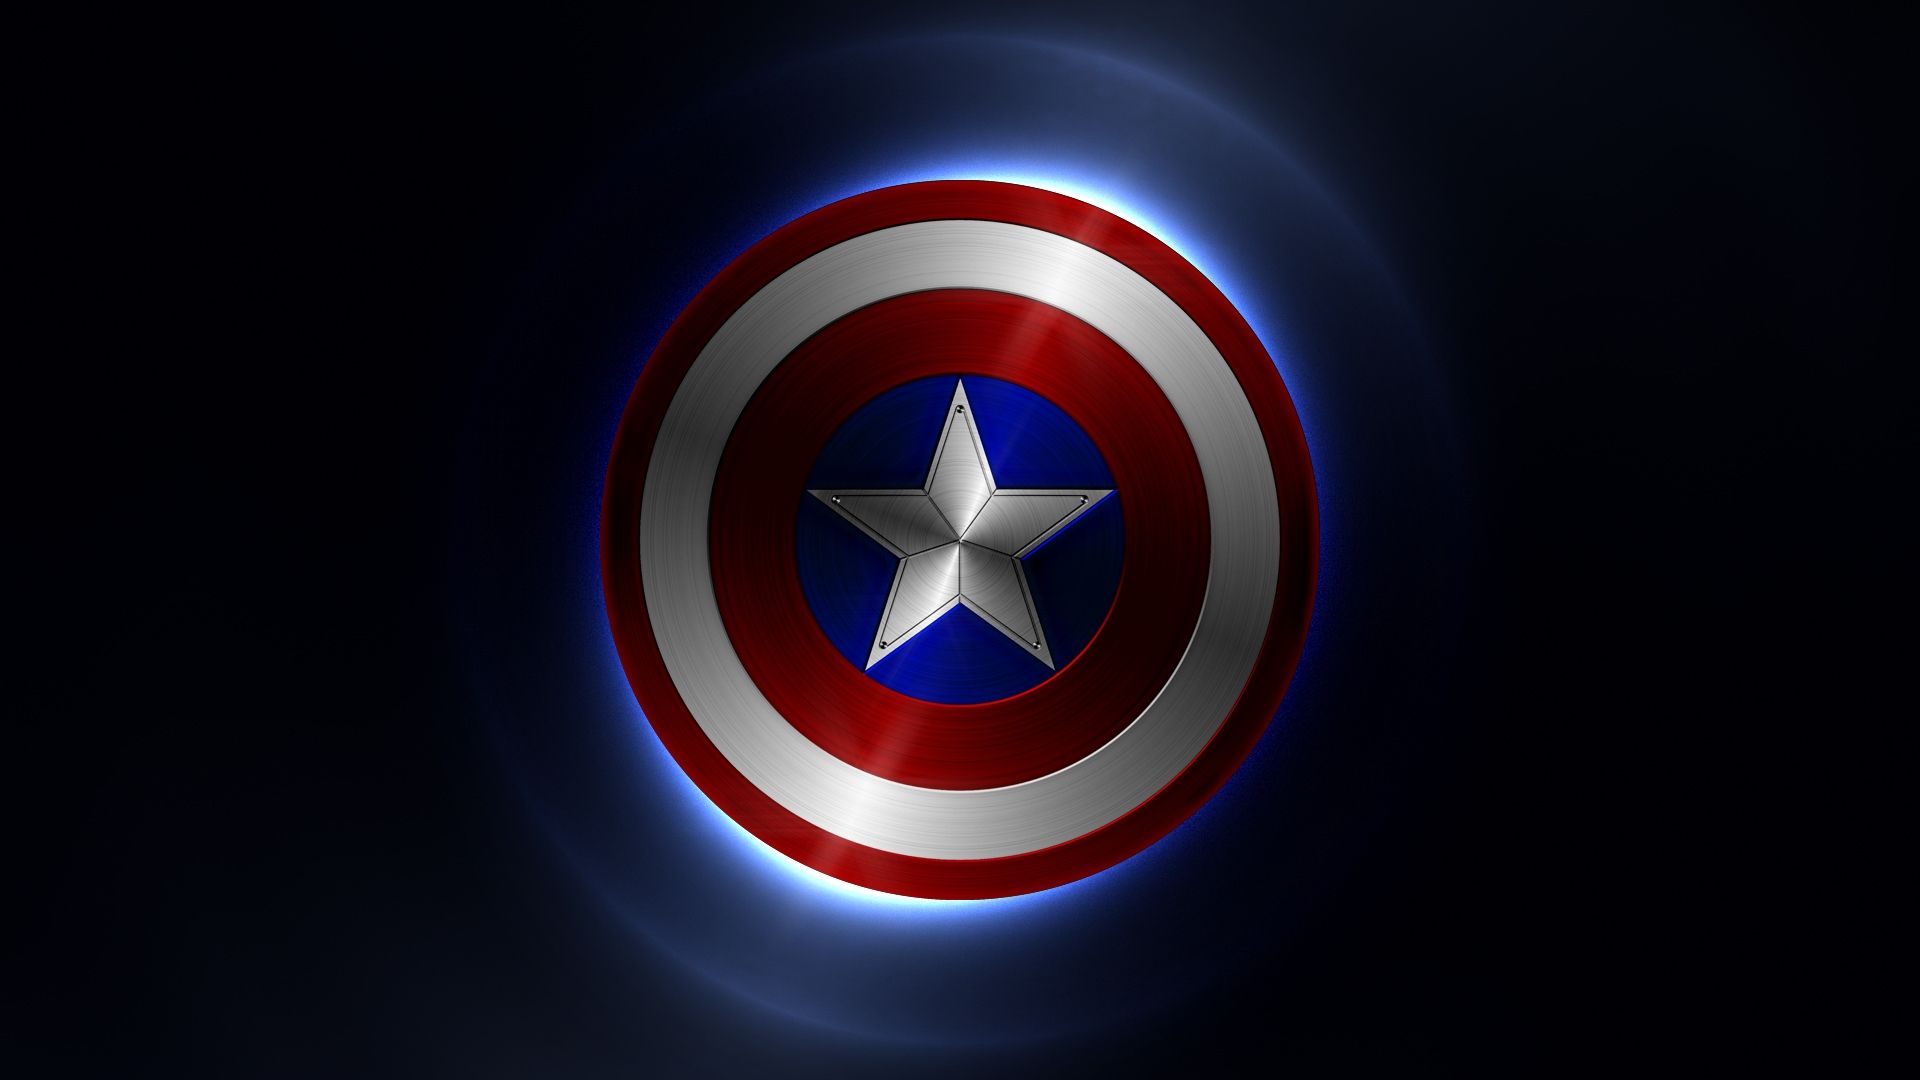 Simple Wallpaper High Resolution Captain America - c36e3c22b738ff172905bc6b4a21af79  Pictures_58533.jpg